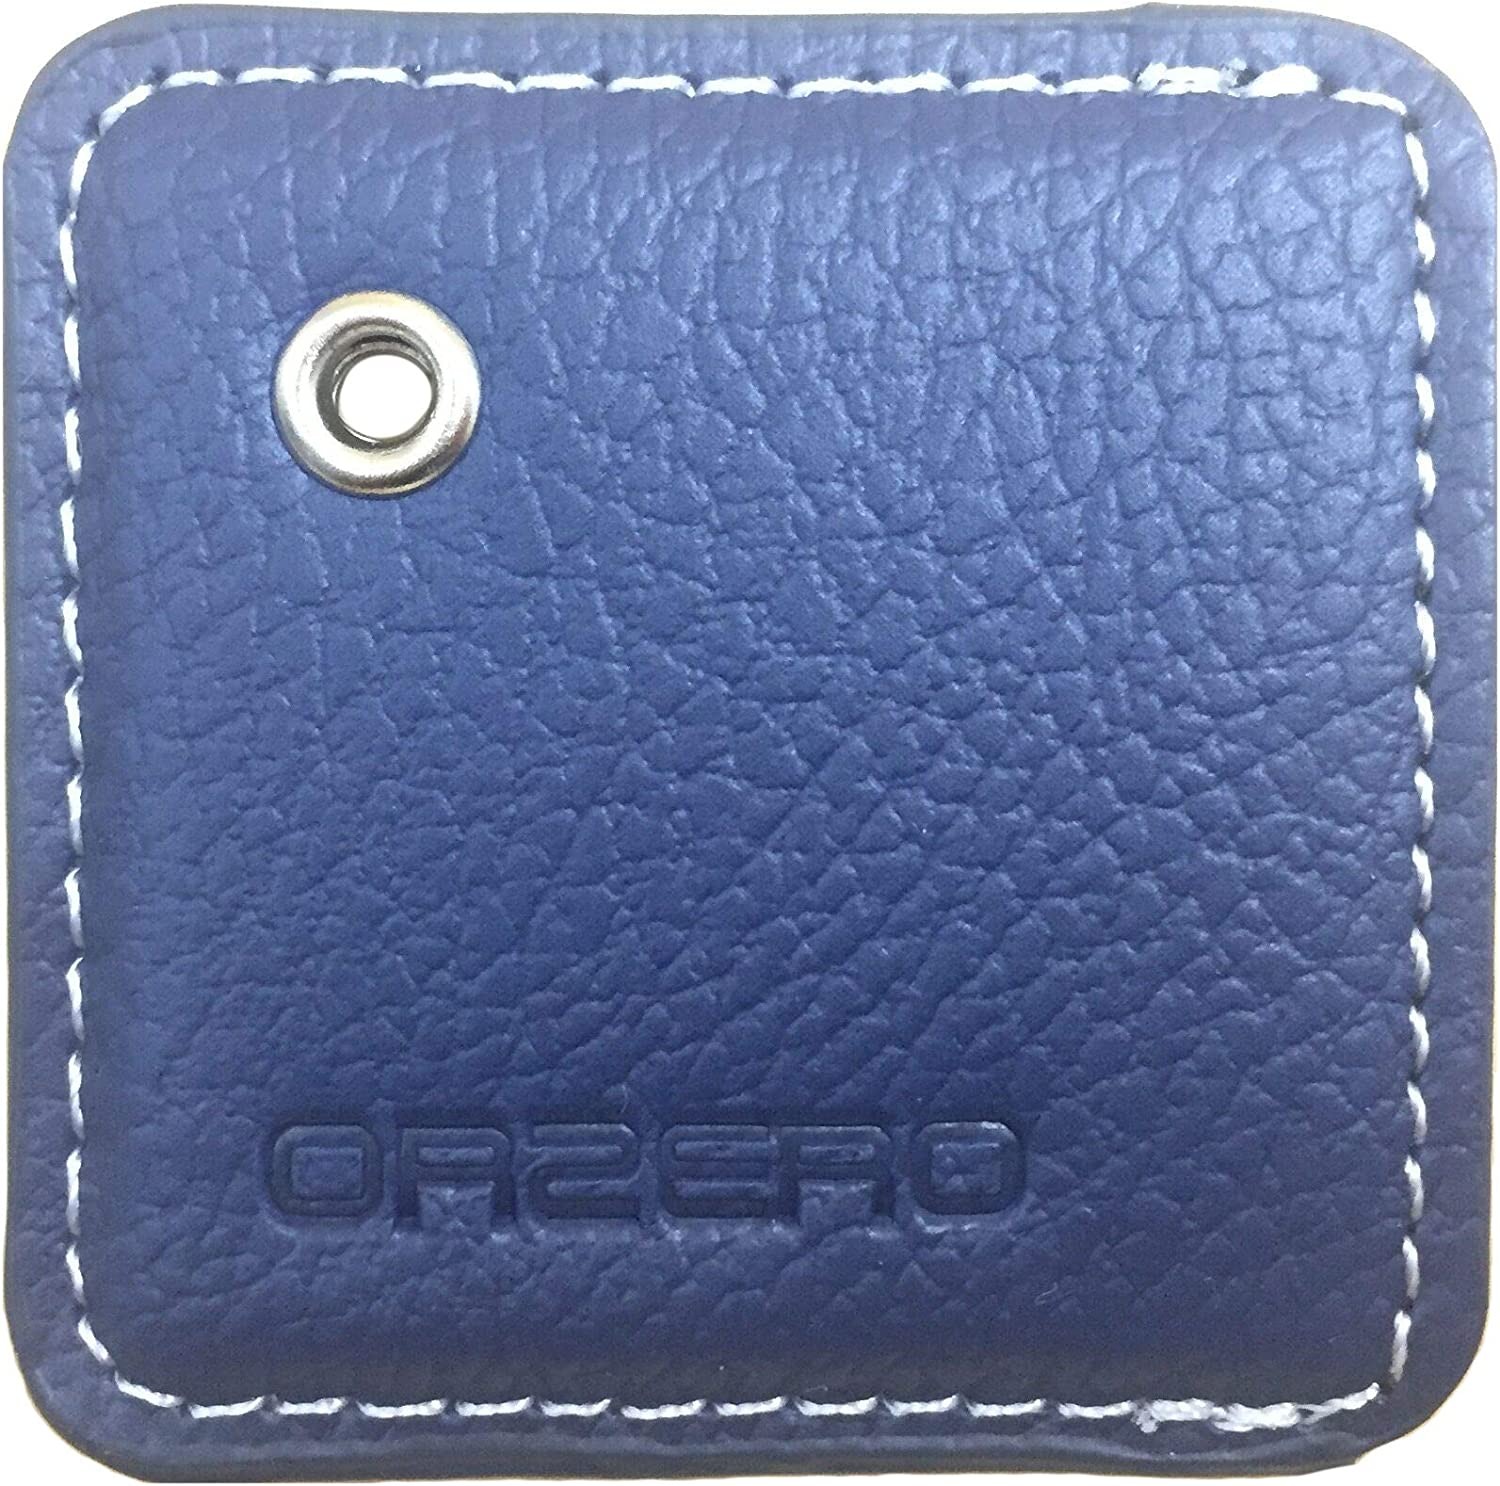 Device Not Included -Blue Orzero Case Compatible for New Tile Mate with Replaceable Battery//Tile Pro//Tile Sport Finder with Keychain//Key Ring Away from Scratch Wet Dirty